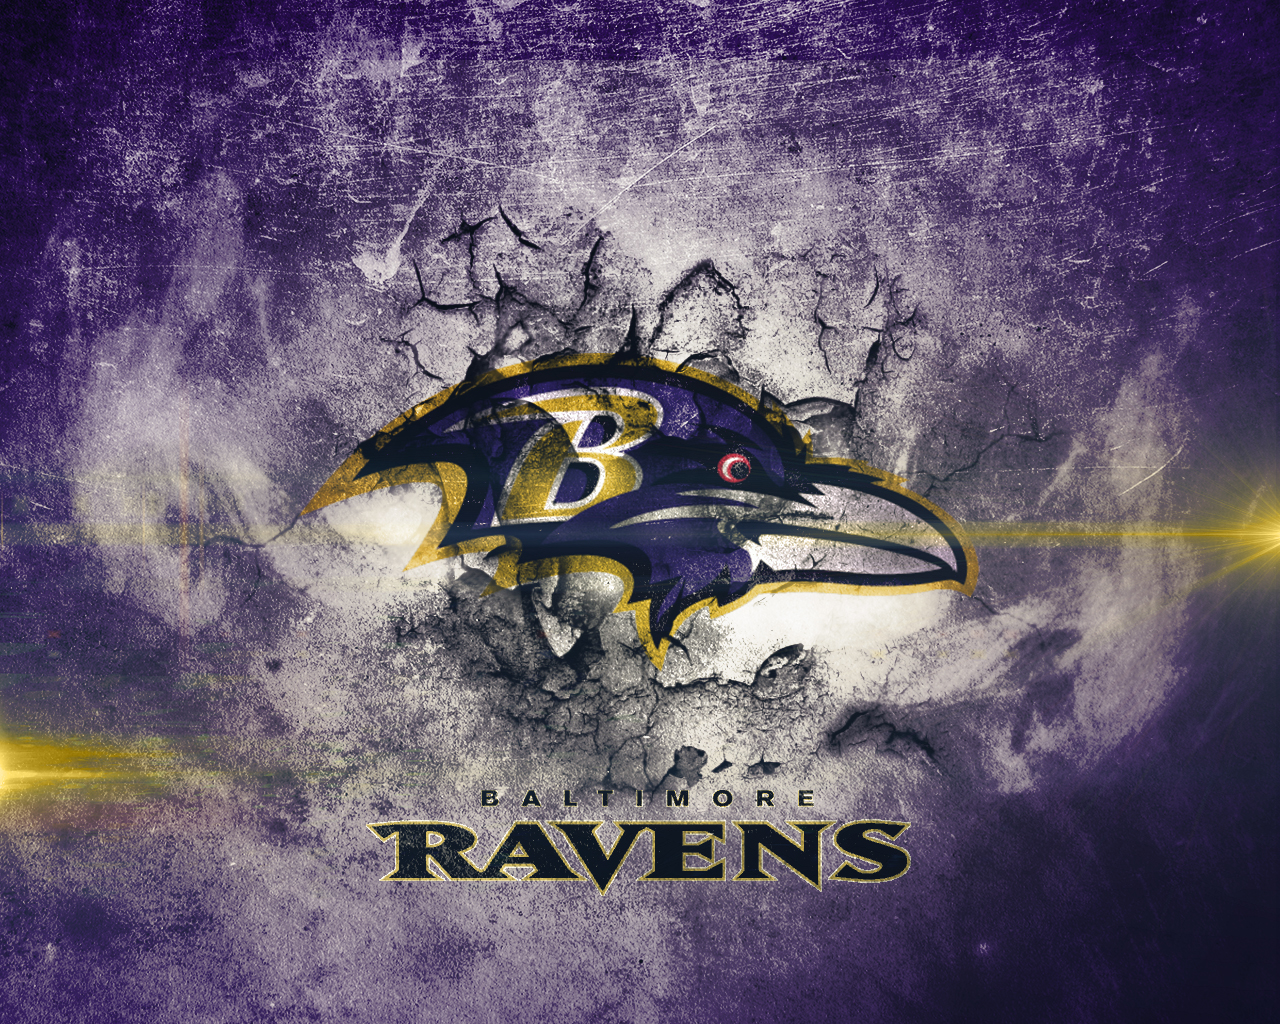 Baltimore Ravens Wallpaper 52914 1280x1024px 1280x1024